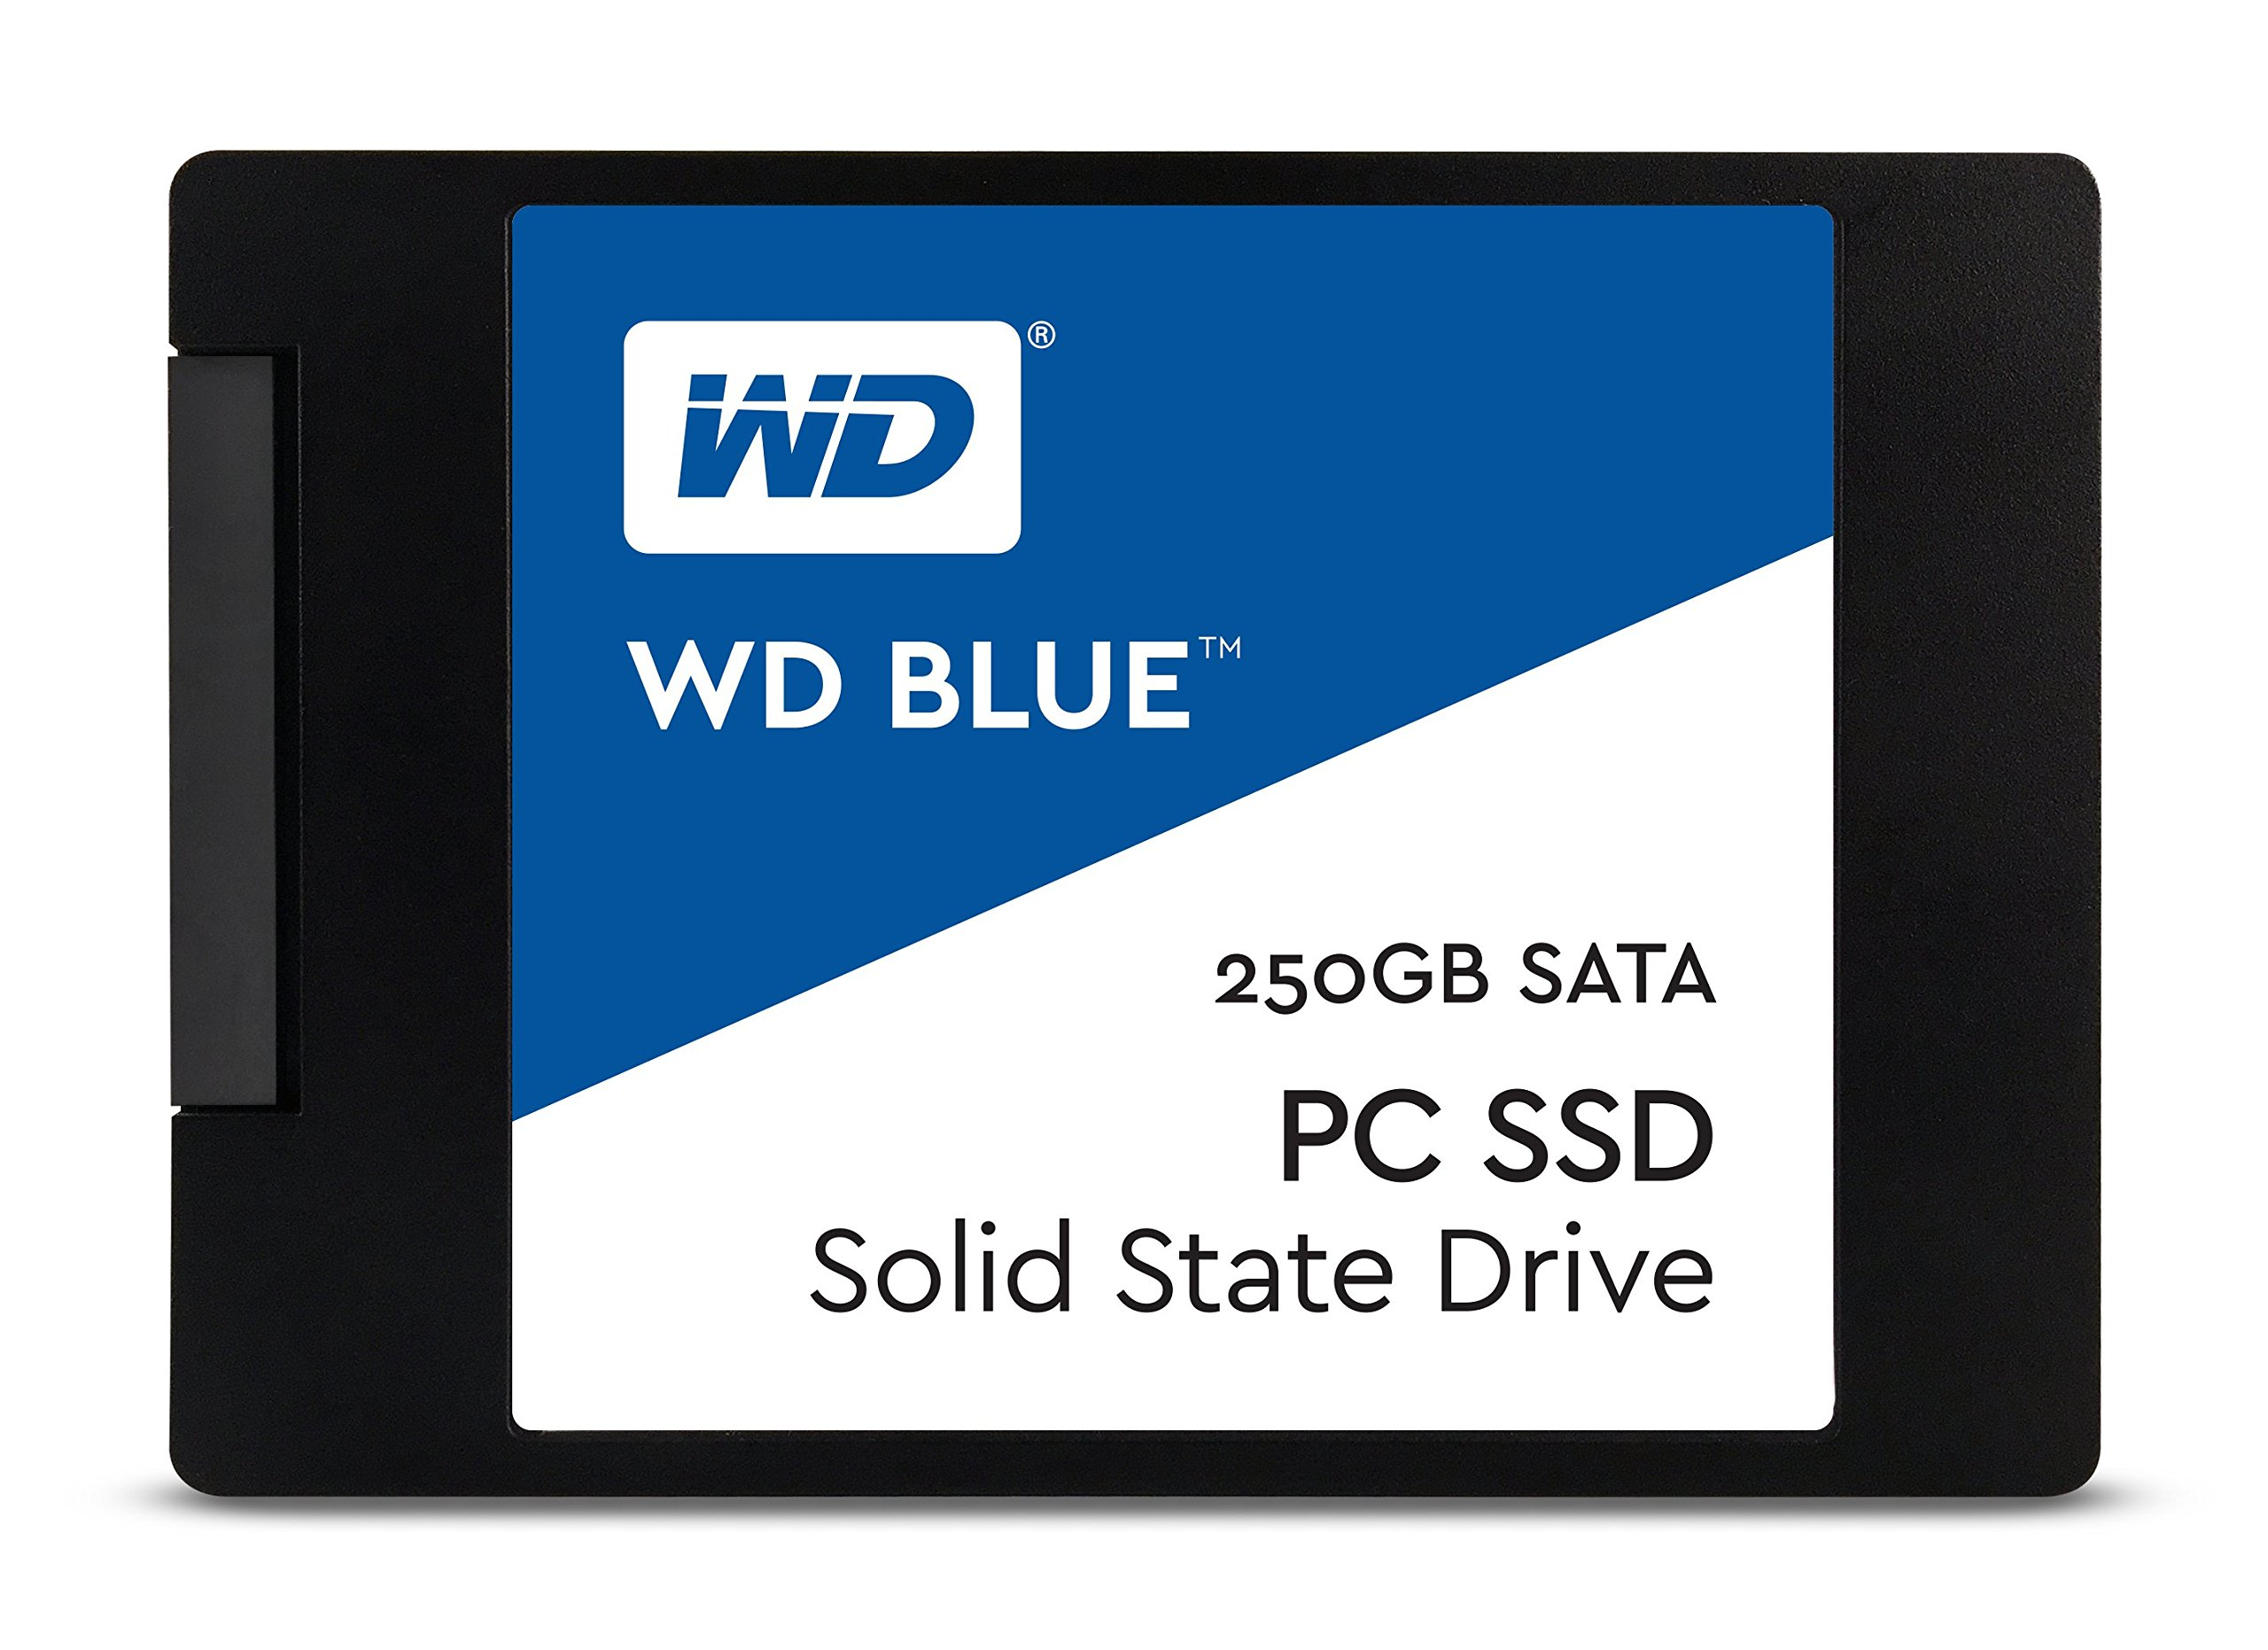 WD Blue 250GB PC SSD - SATA 6 Gb/s 2.5 Inch Solid State Drive -  WDS250G1B0A by Western Digital